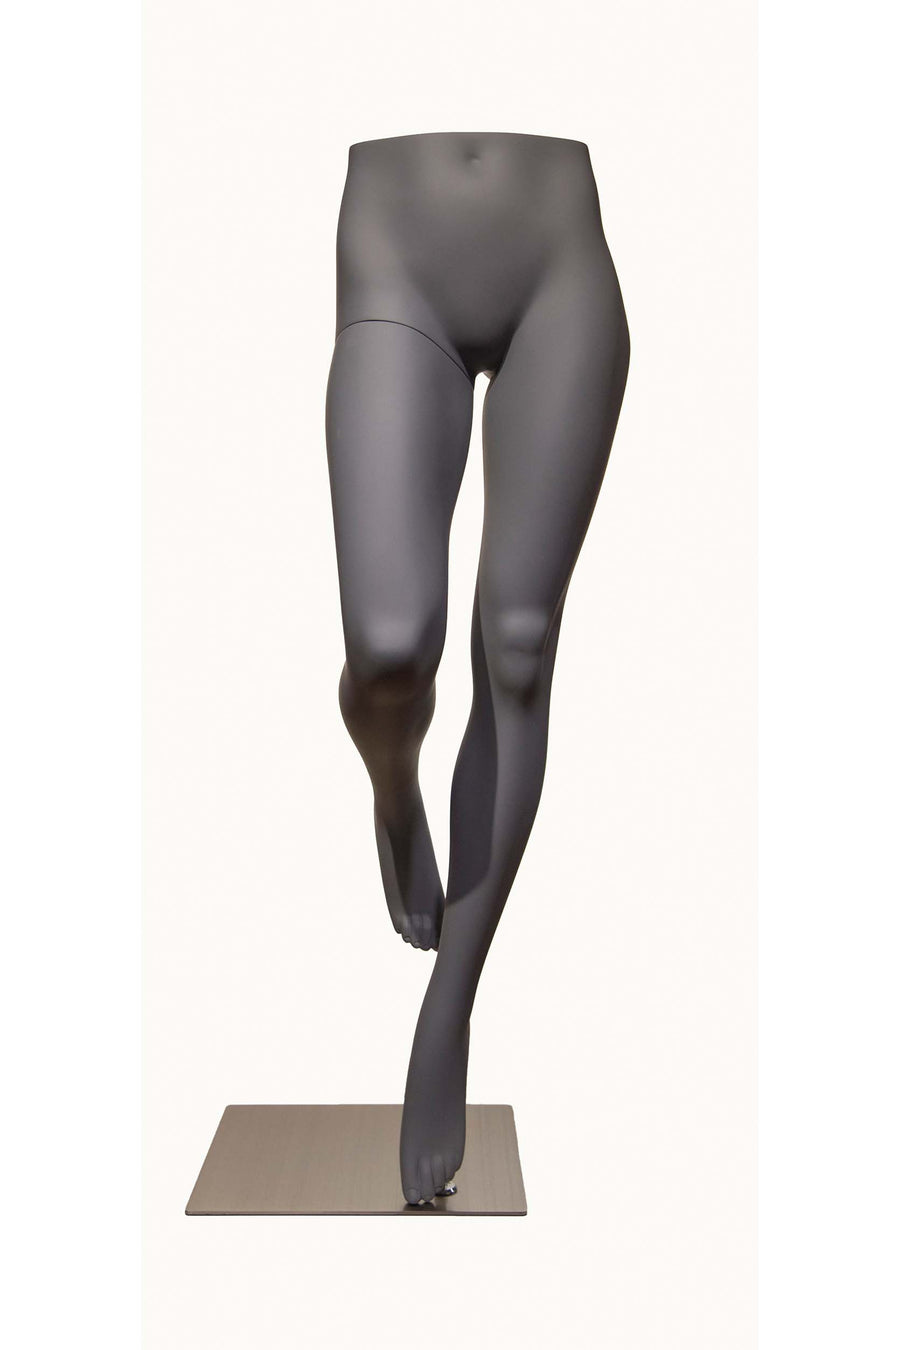 grey female mannequin legs with no torso